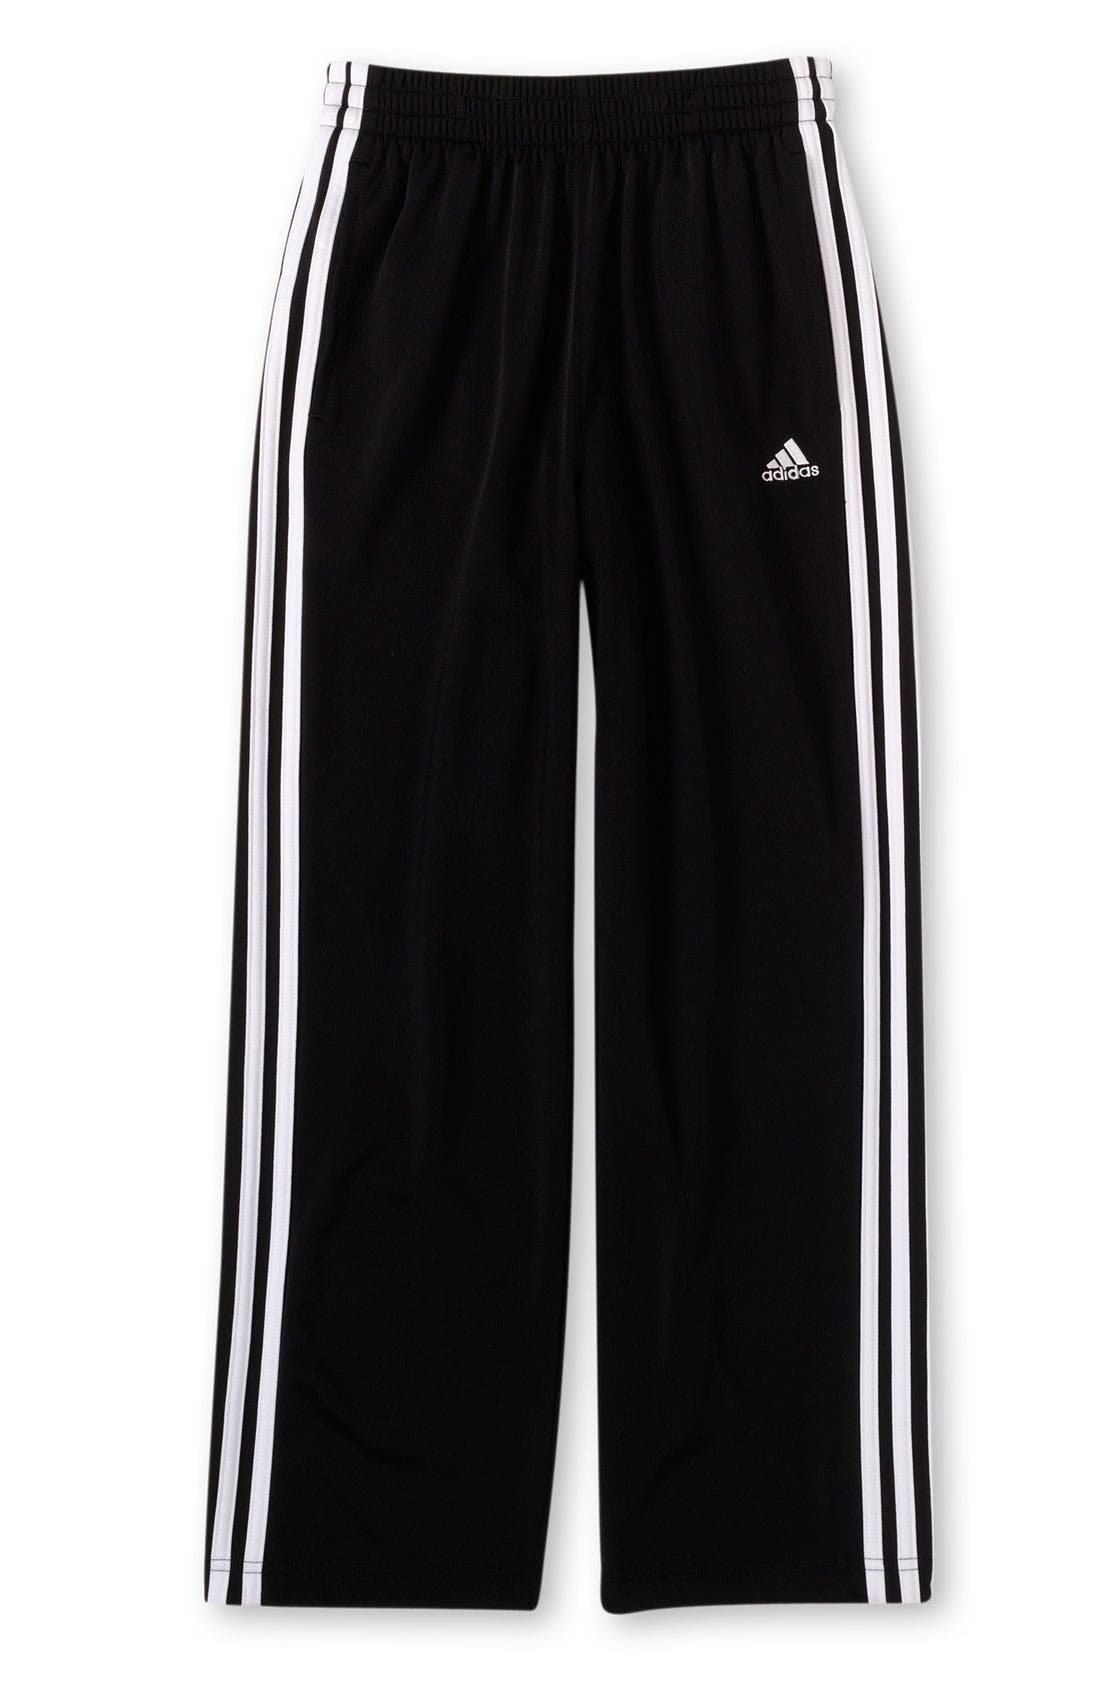 Alternate Image 1 Selected - adidas 3-Stripes Pants (Big Boys)